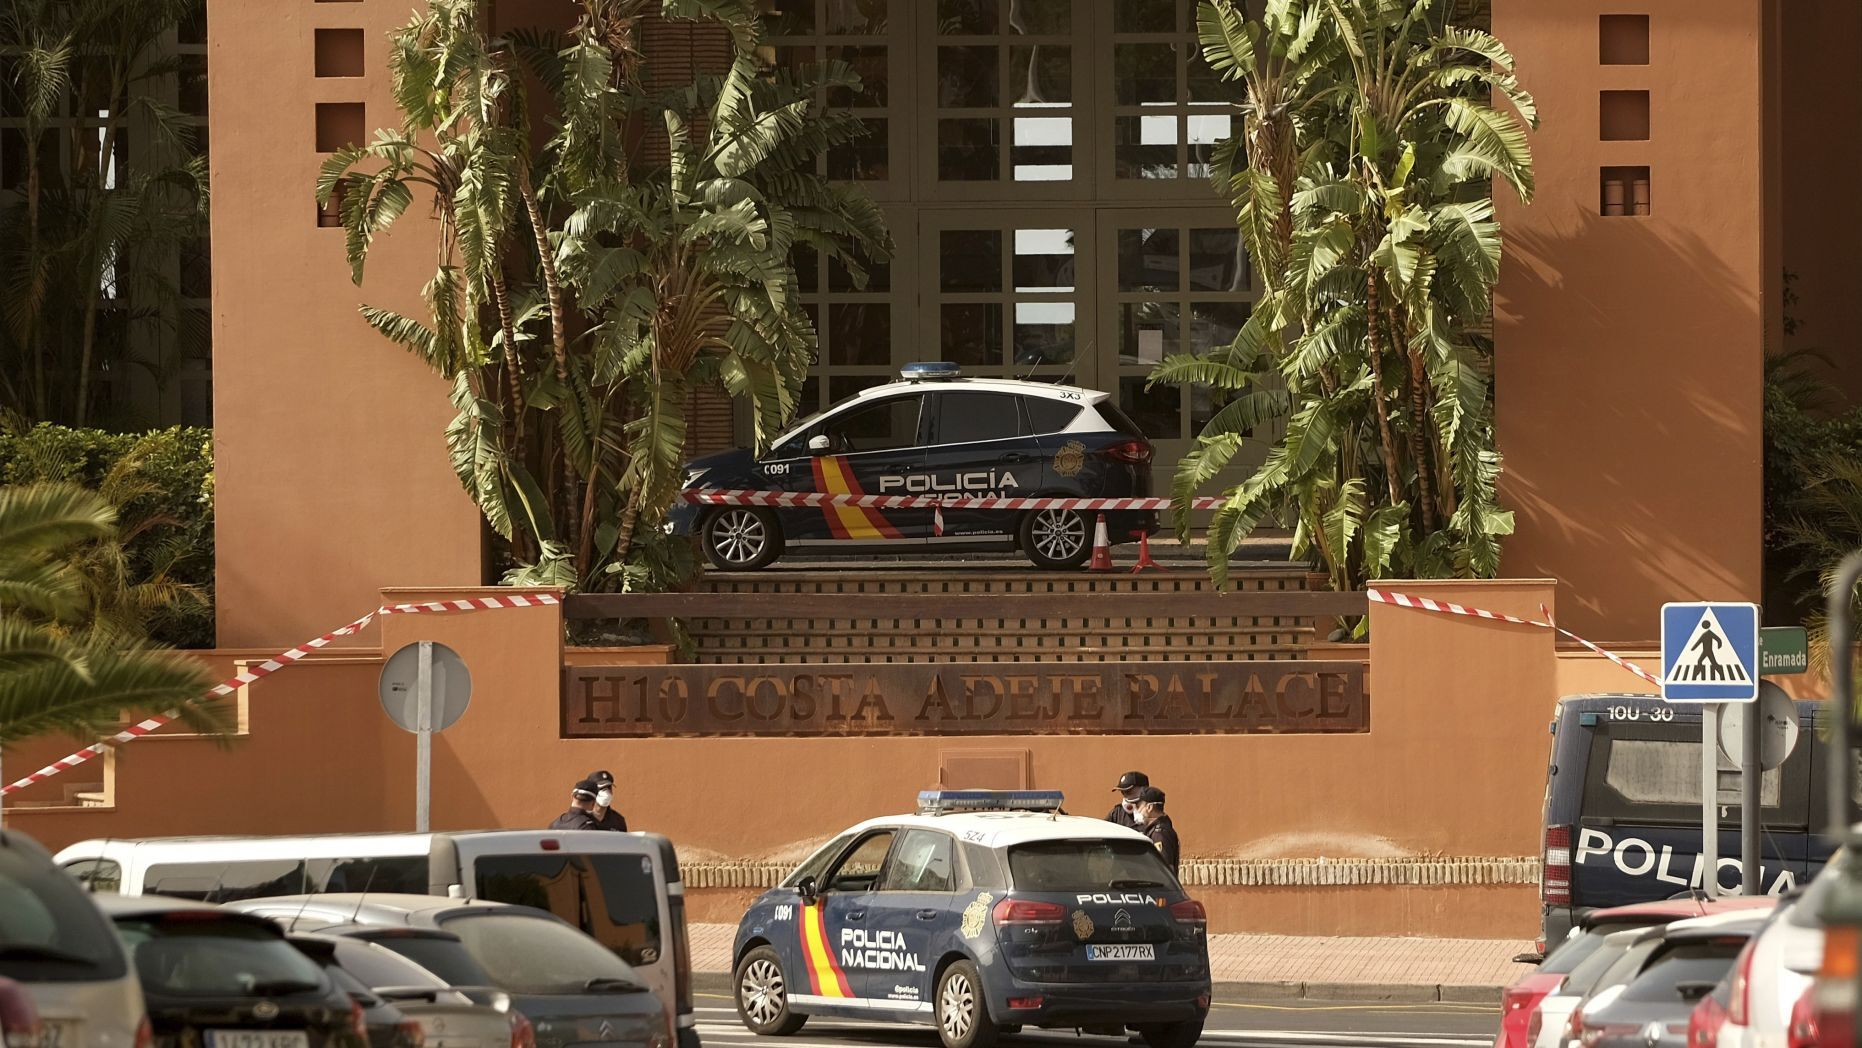 Tenerife Hotel Placed in Quarantine After Italian Tests Positive for Coronavirus